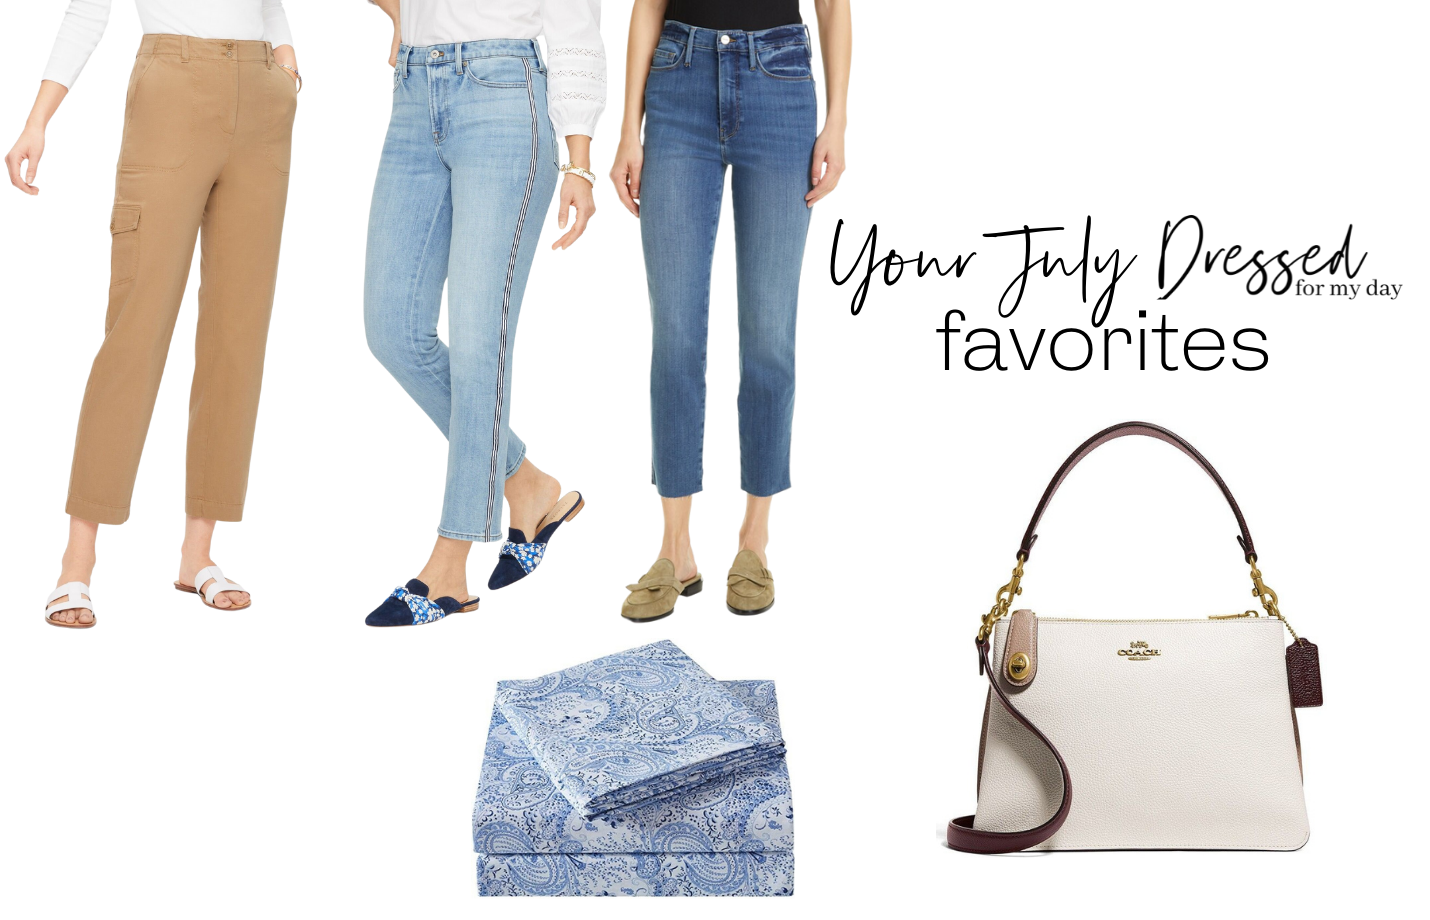 Your July Dressed for My Day Favorites